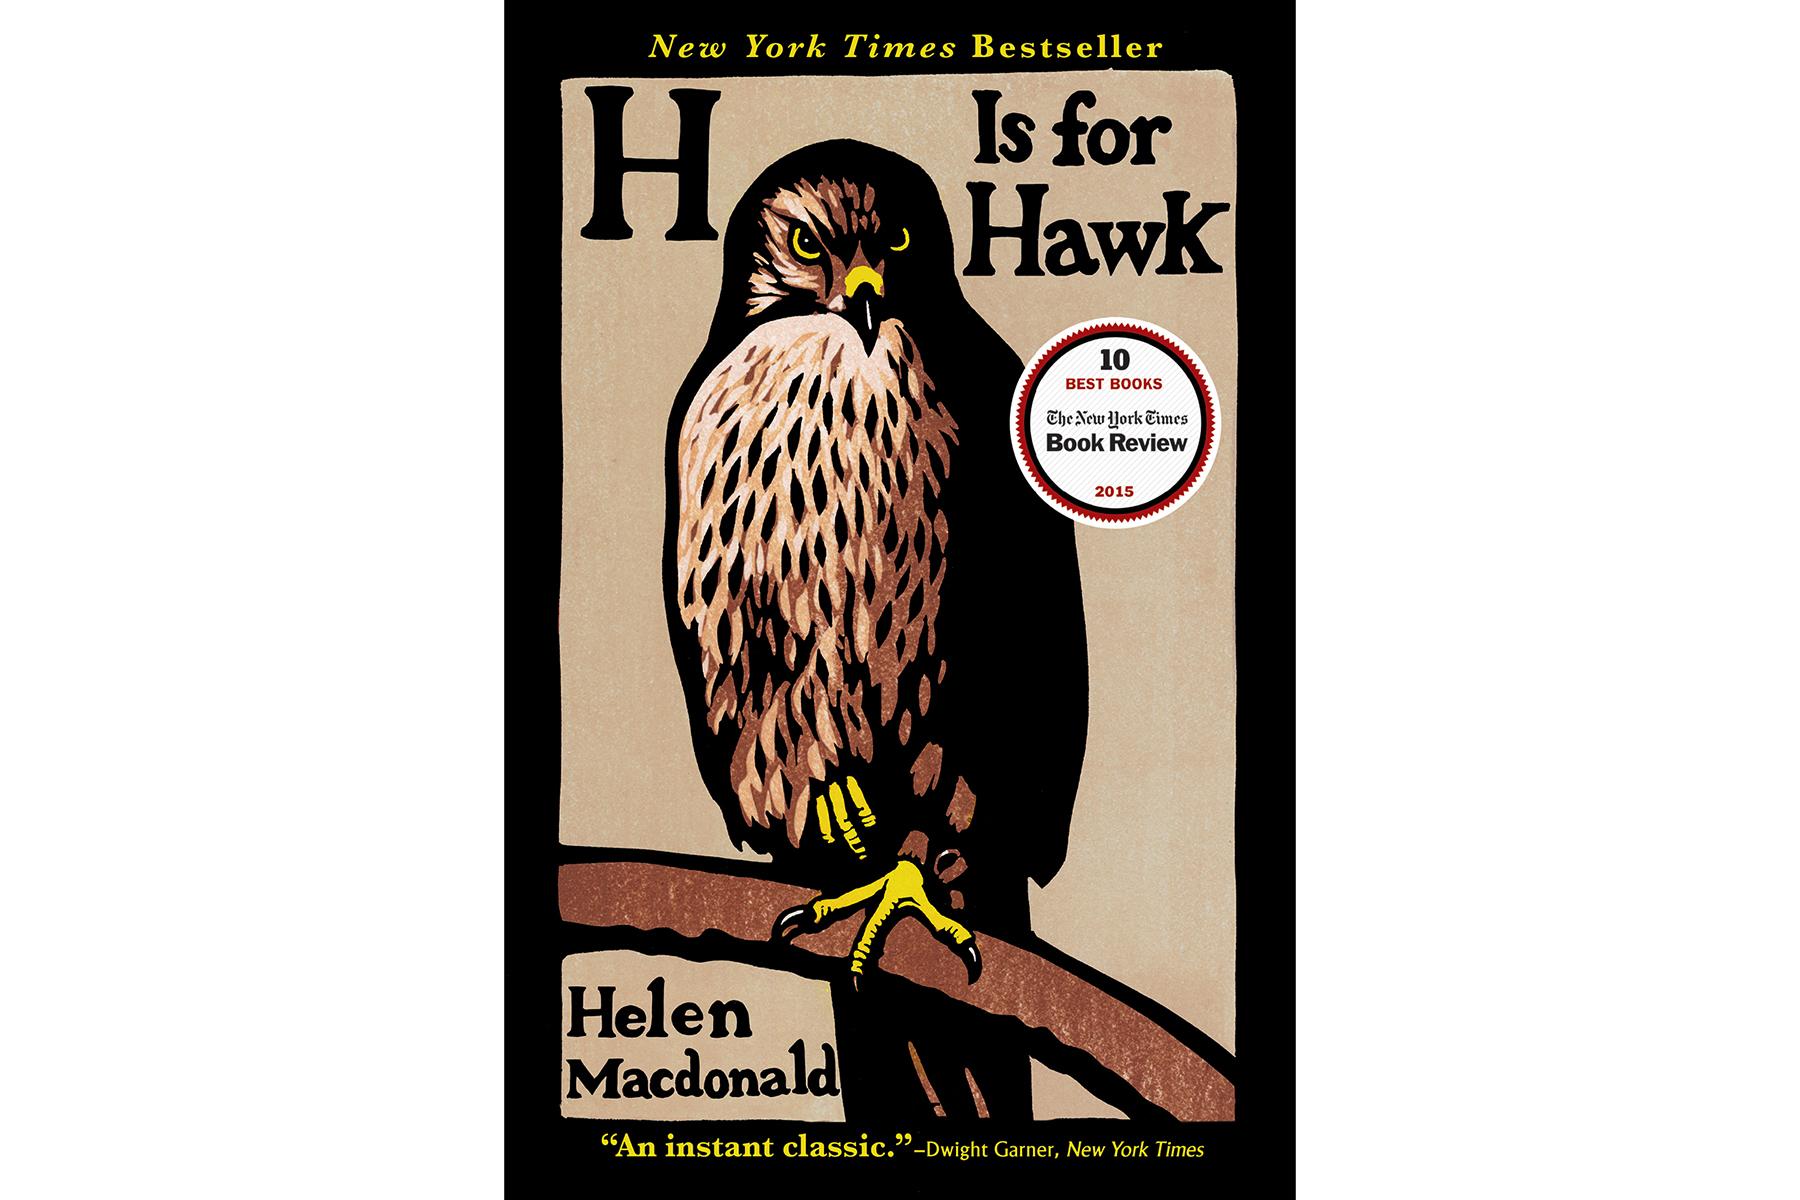 H Is for Hawk, by Helen MacDonald (Loss Books)